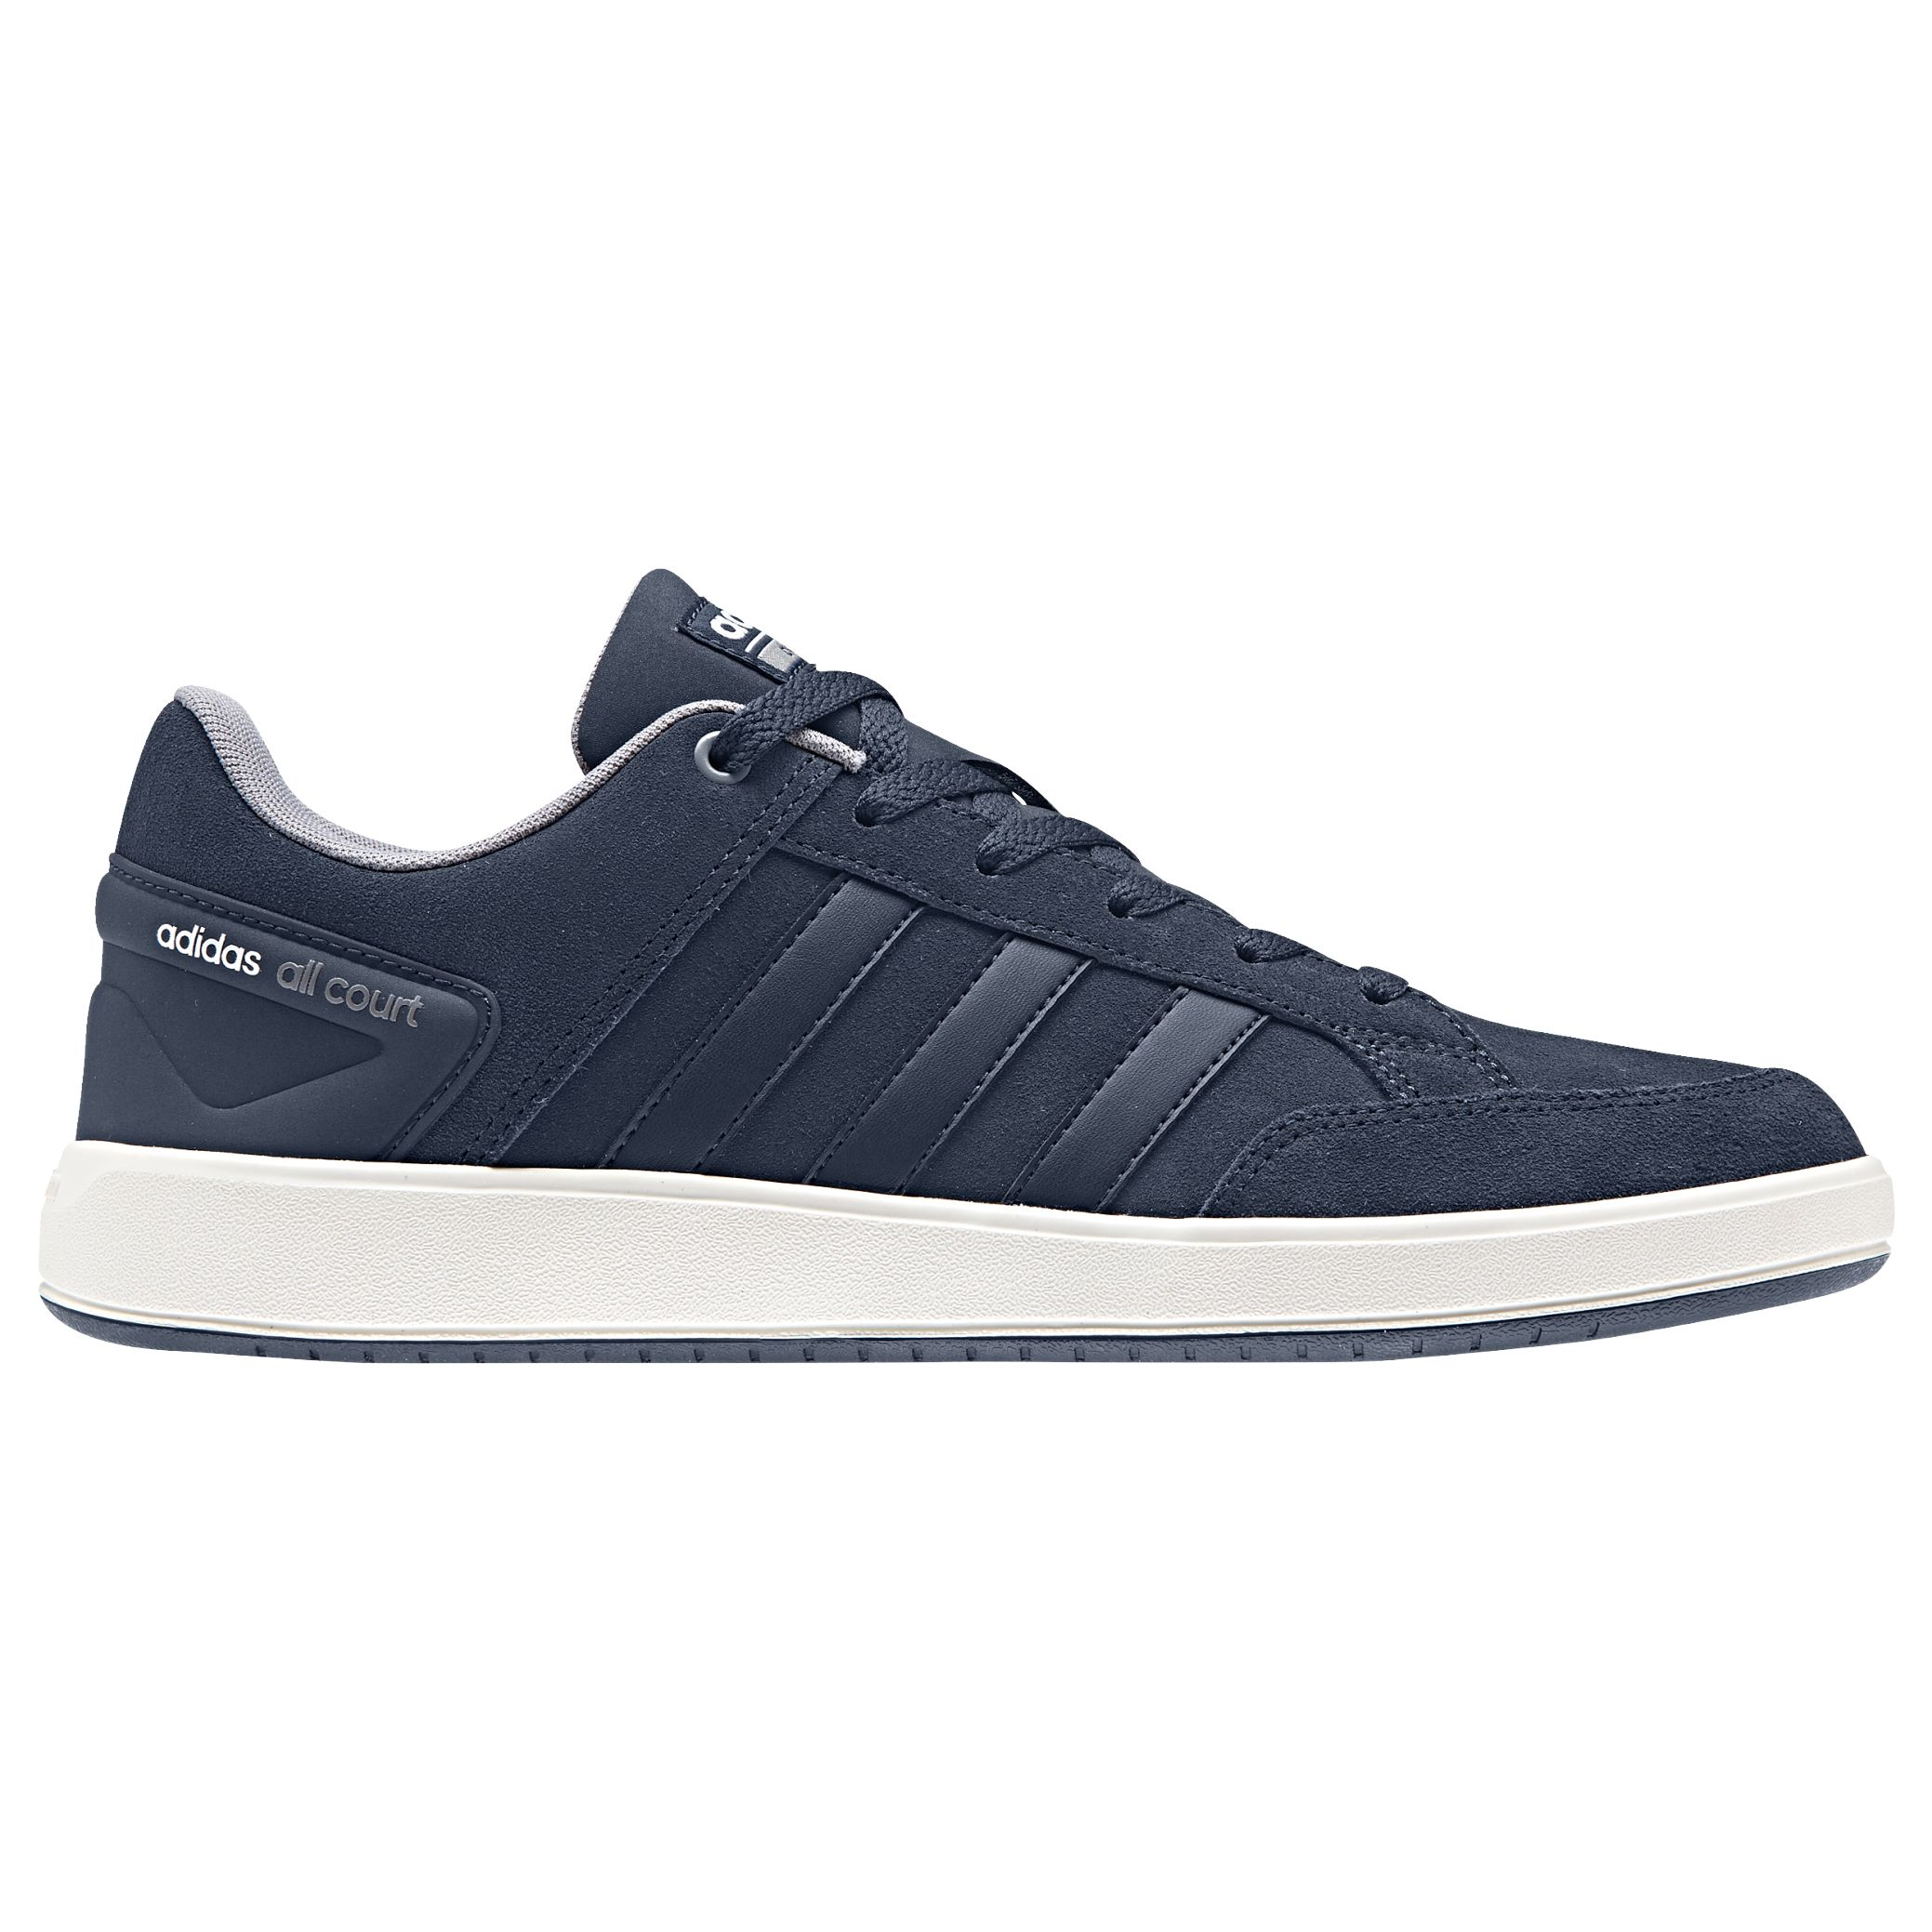 adidas Cloudfoam All Court Men's Trainers at John Lewis & Partners